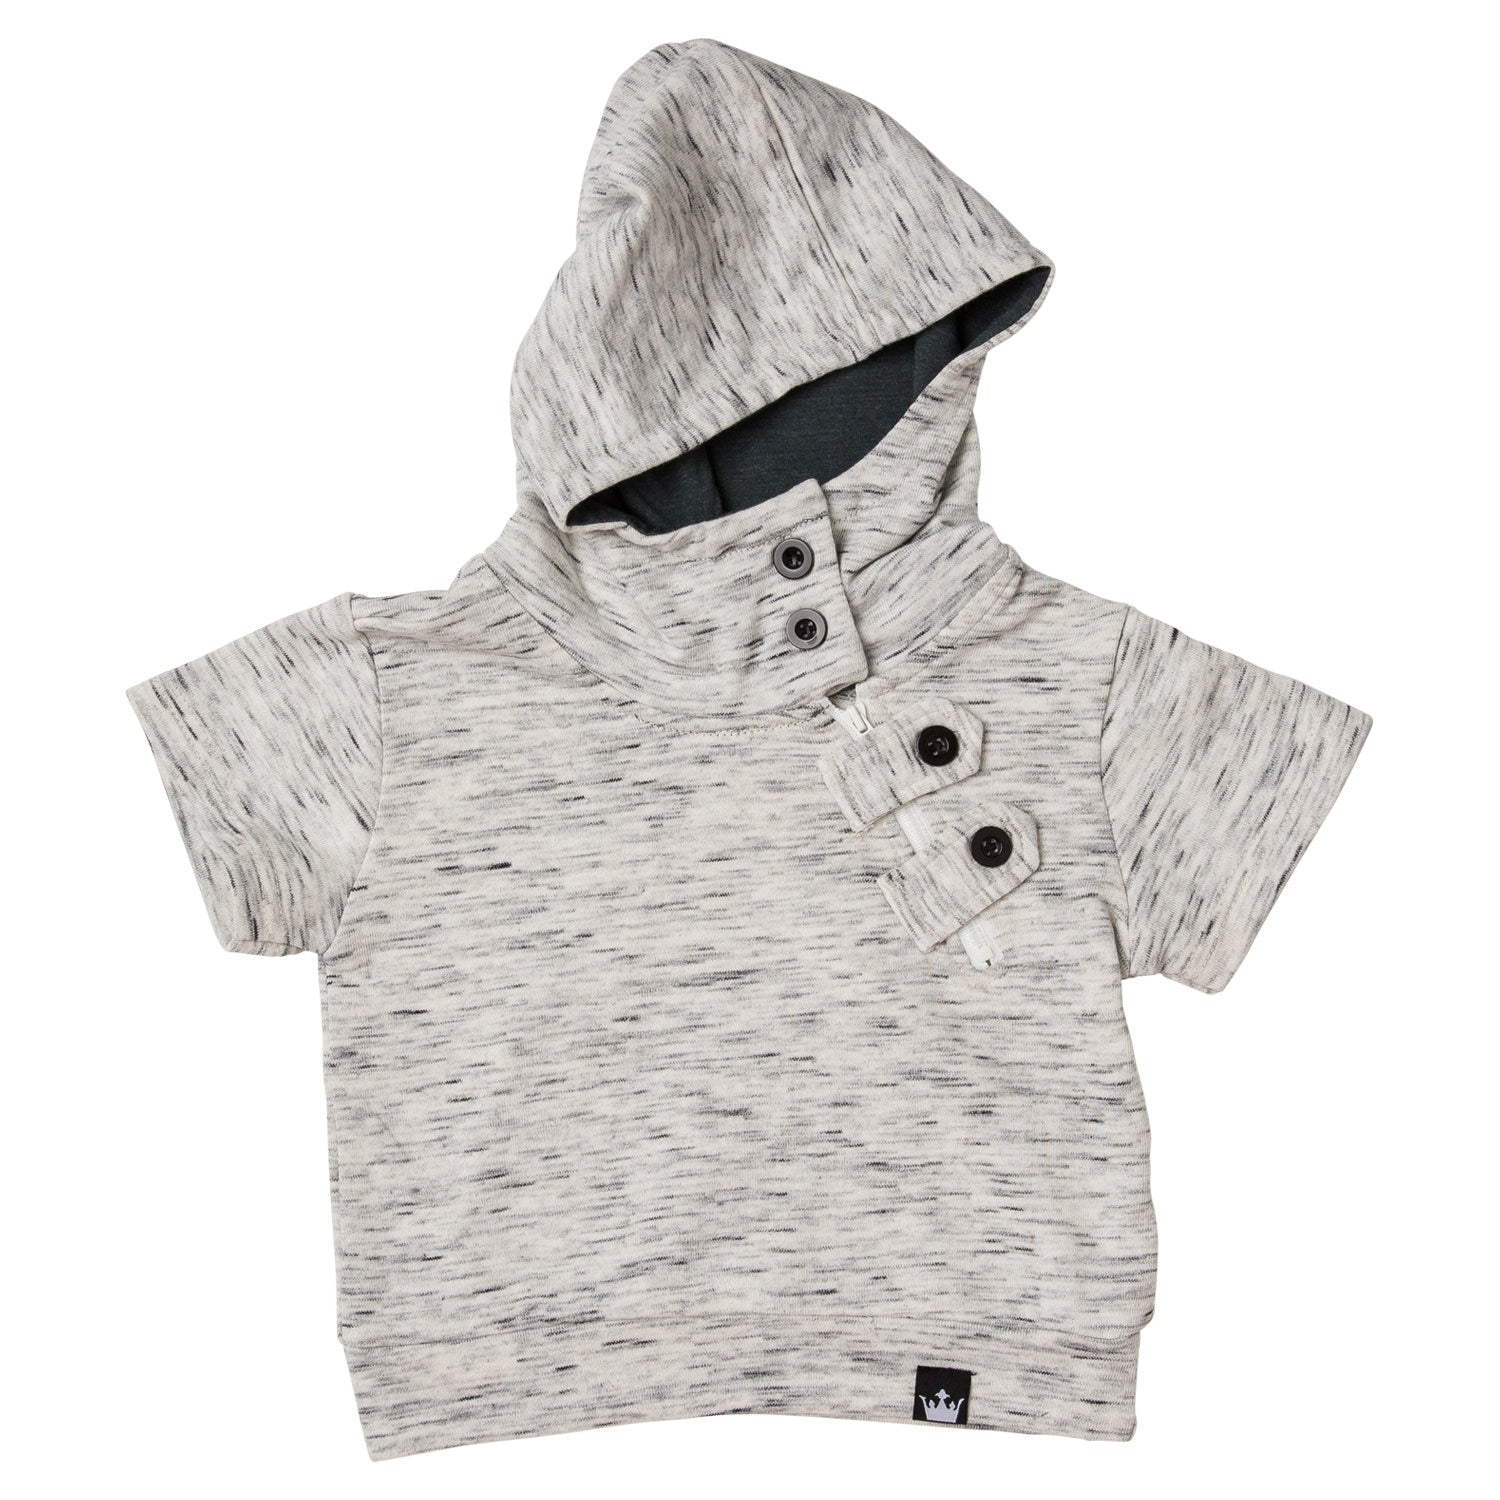 ftzh-gry-gray-french-terry-asymmetrical-zip-up-hoodie-front-product.jpg